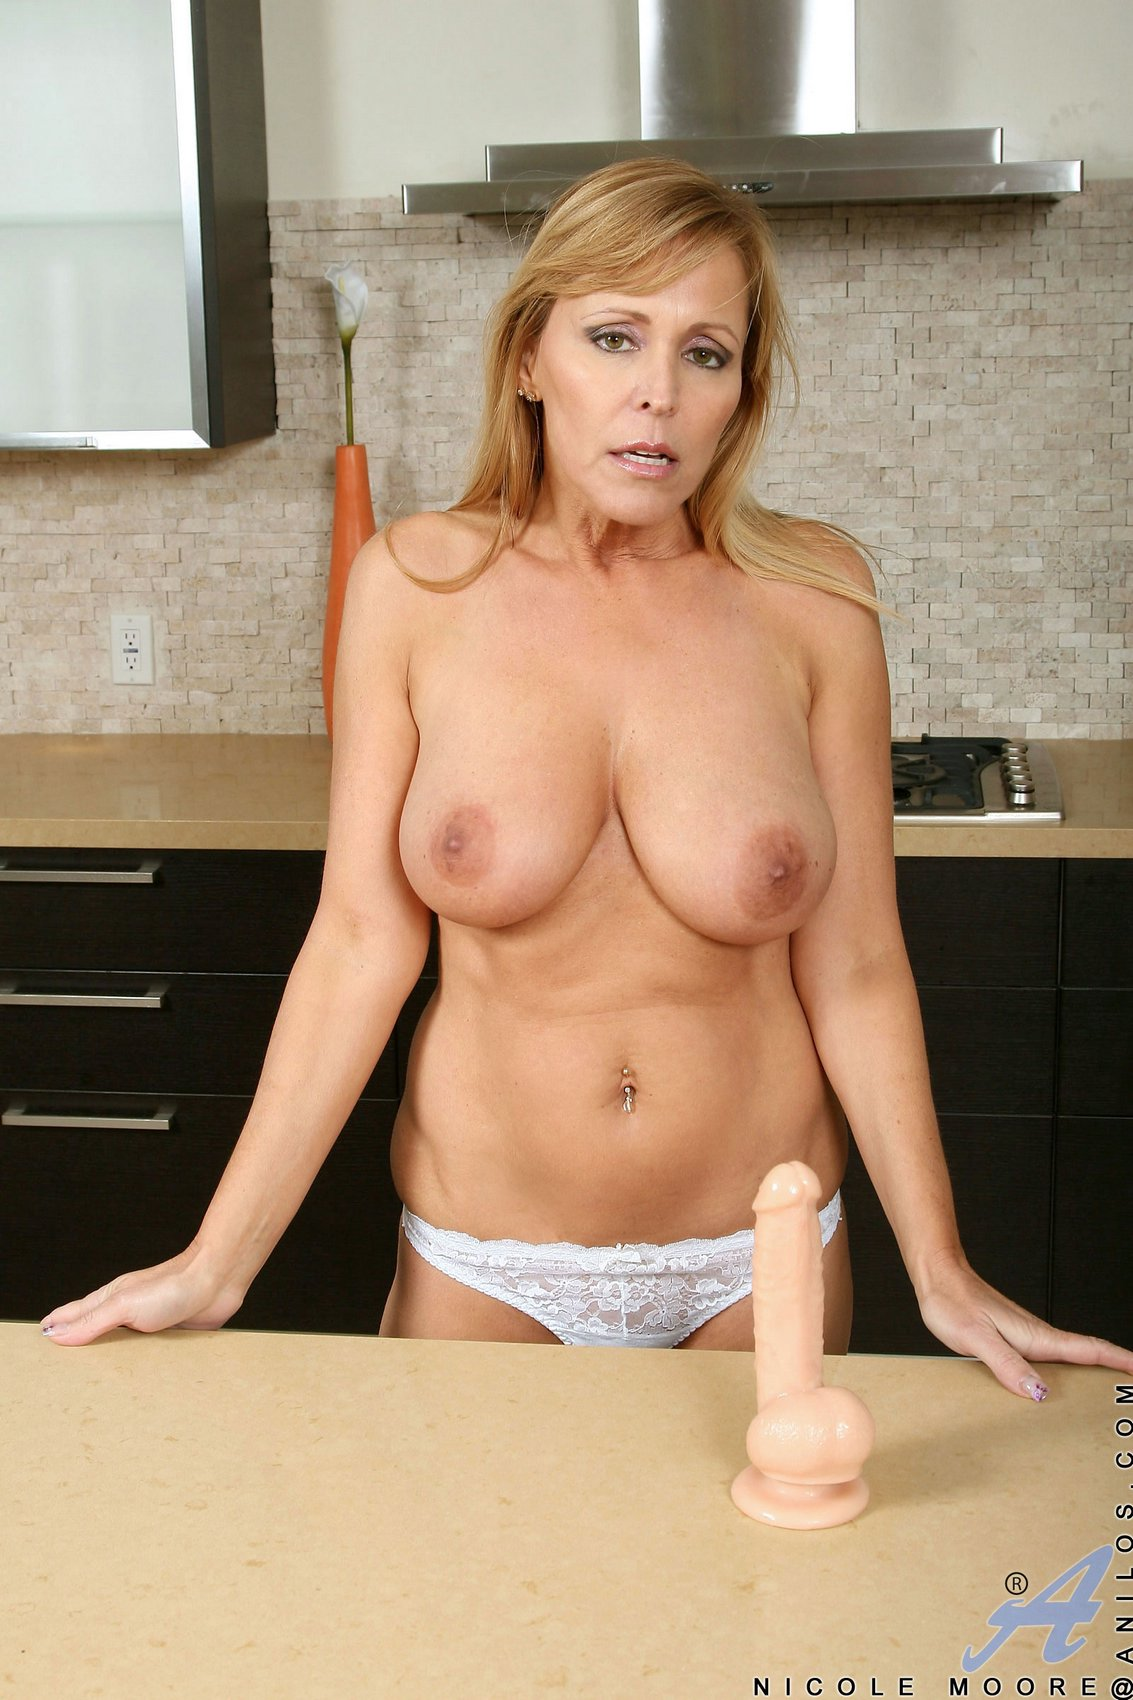 Nicole Moore Free Porn Pics hot milf nicole moore sucking a dildo in the kitchen - my